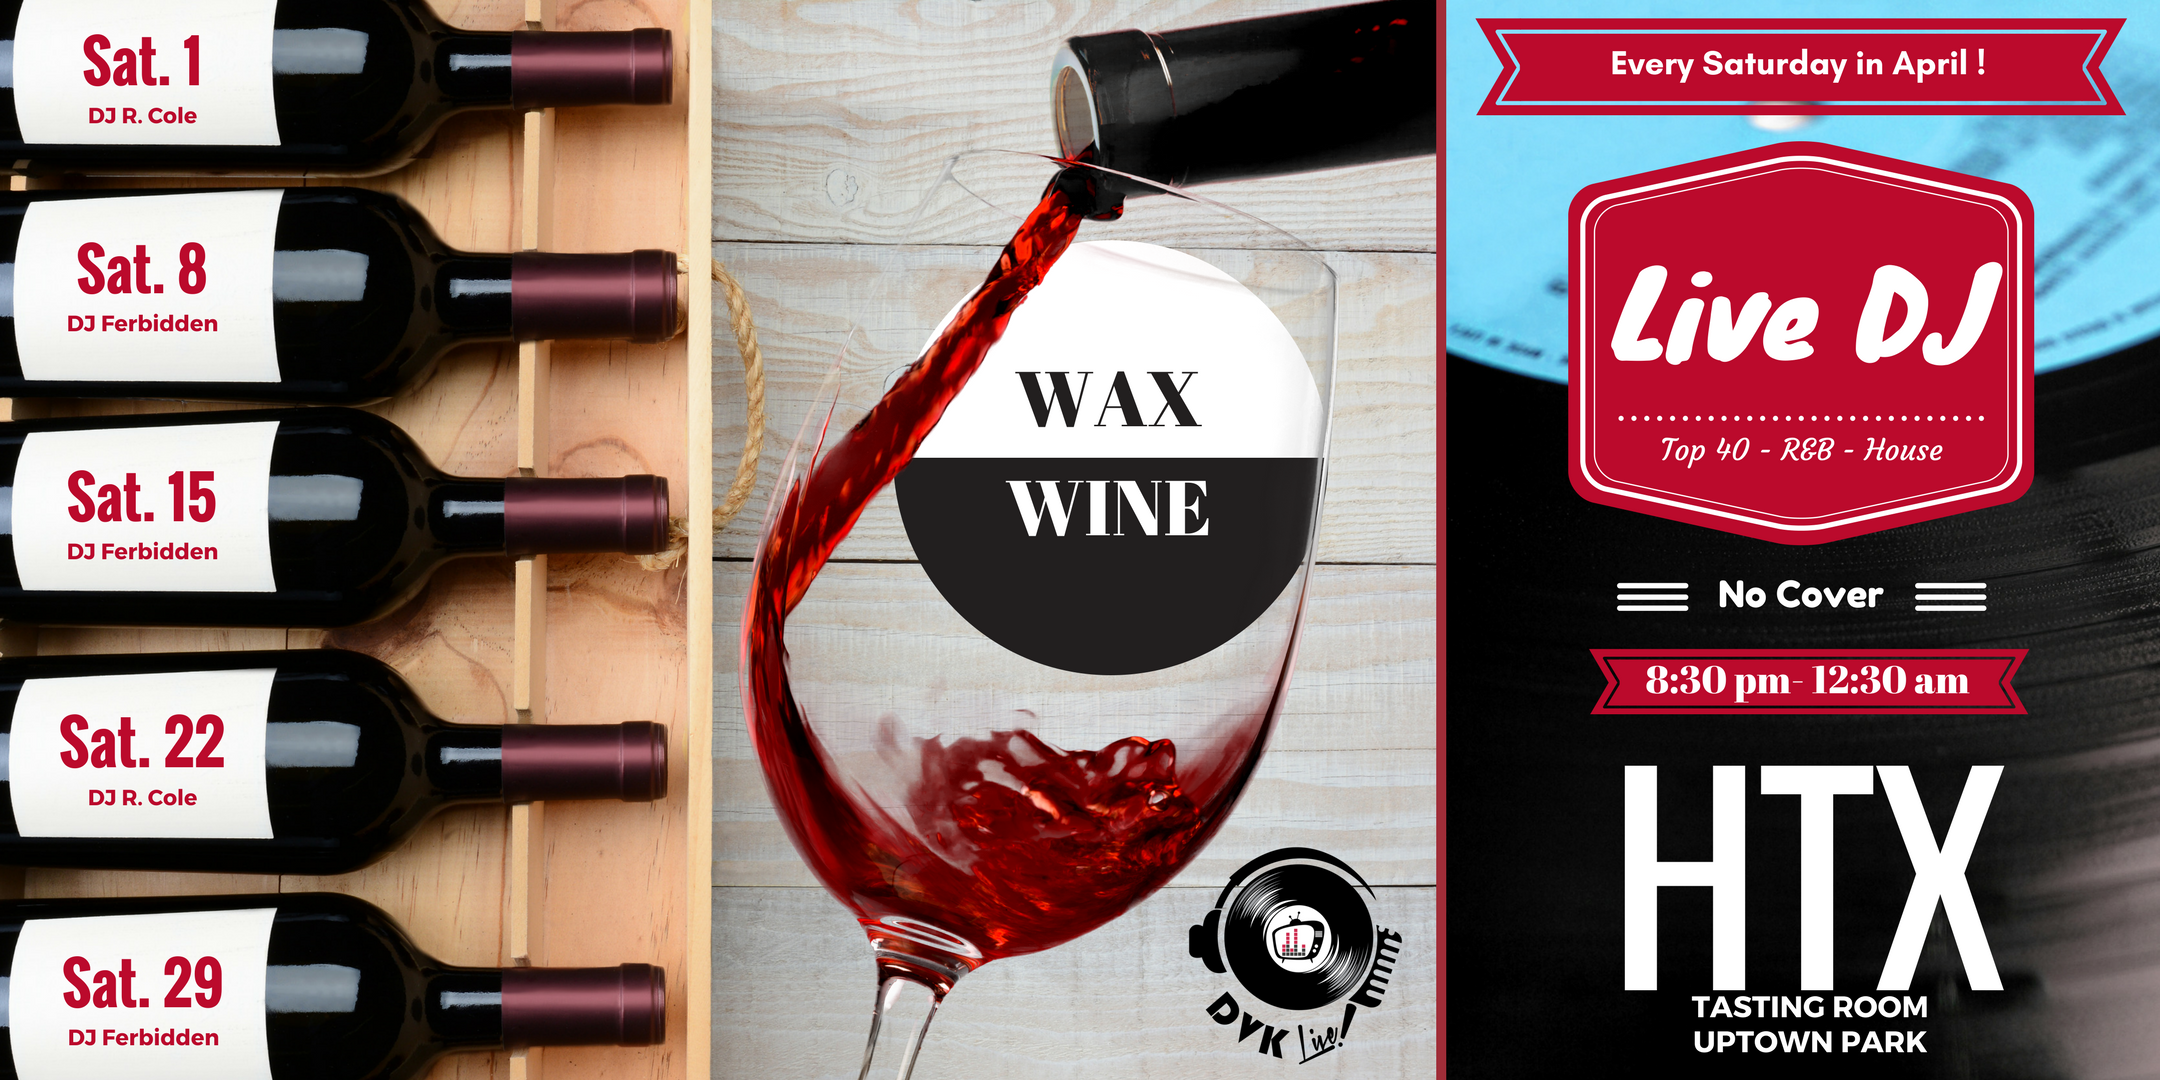 Live DJ - Wax and Wine - Tasting Room Uptown Park. Live DJ - Wax and Wine - Tasting Room Uptown Park